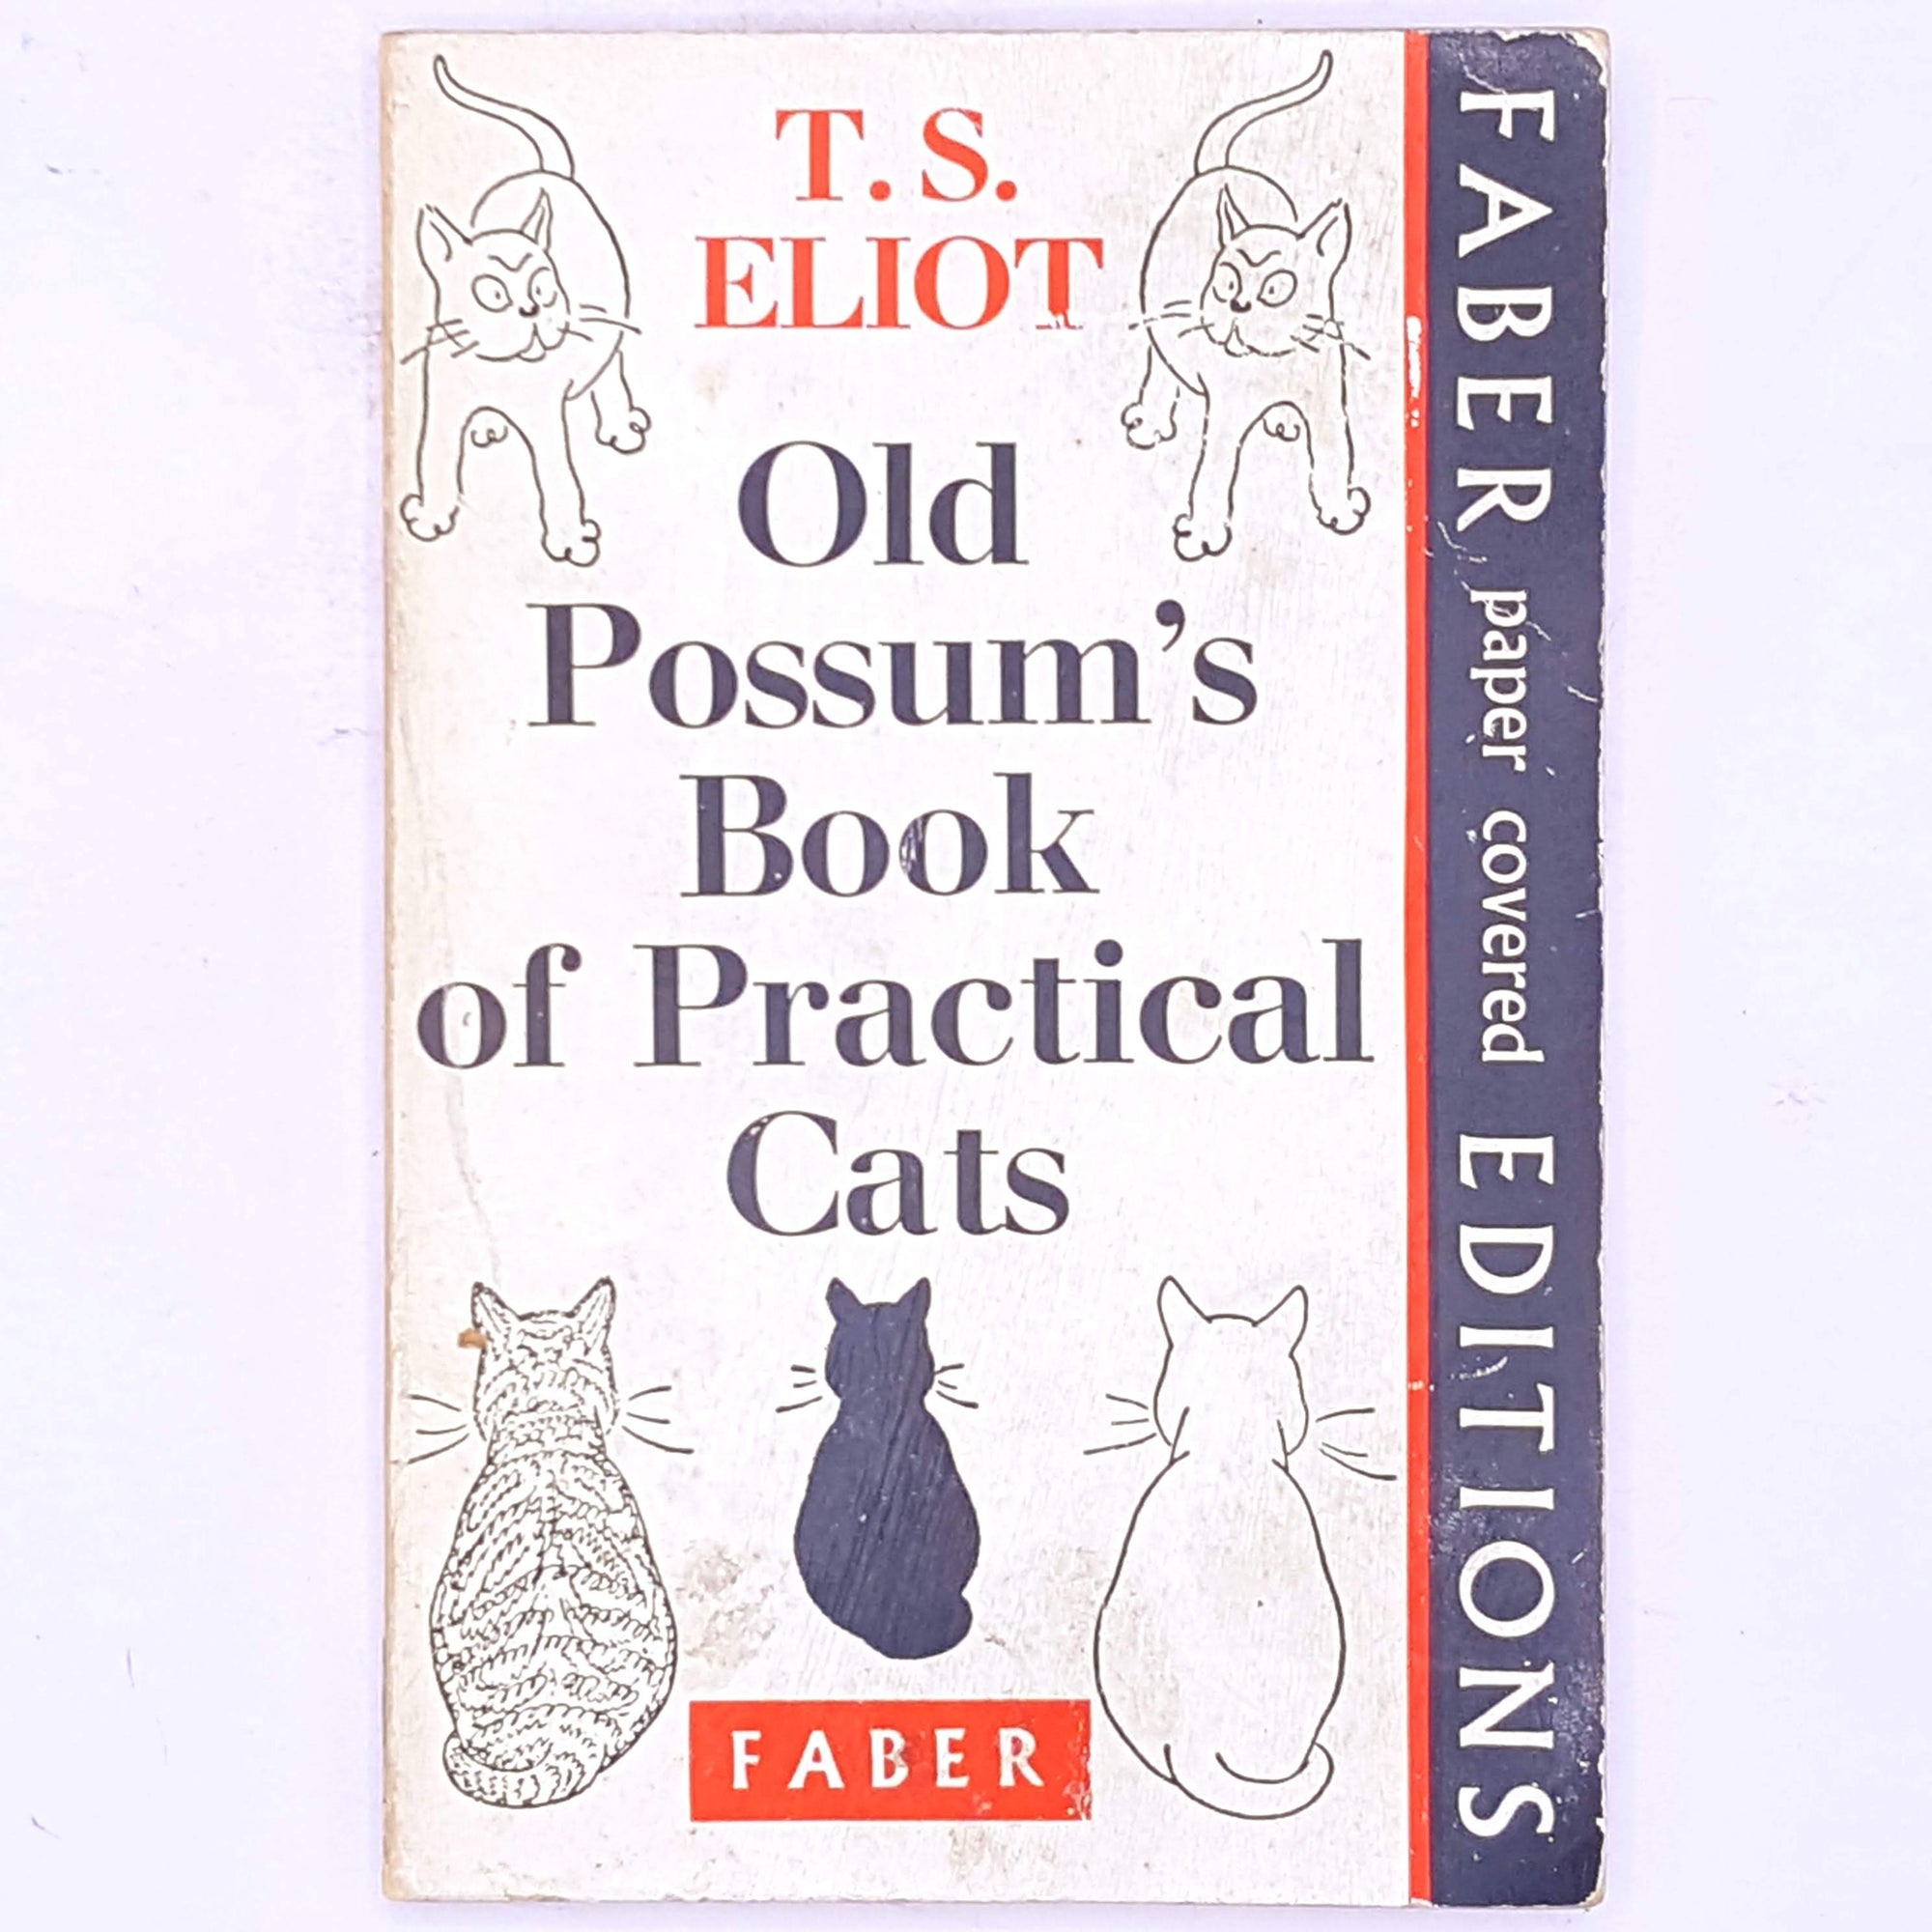 classic-old-possum's-book-of-practical-cats-faber-and-faber-vintage-decorative-country-house-library-books-antique-old-patterned-thrift-t.s.-eliot-cats-